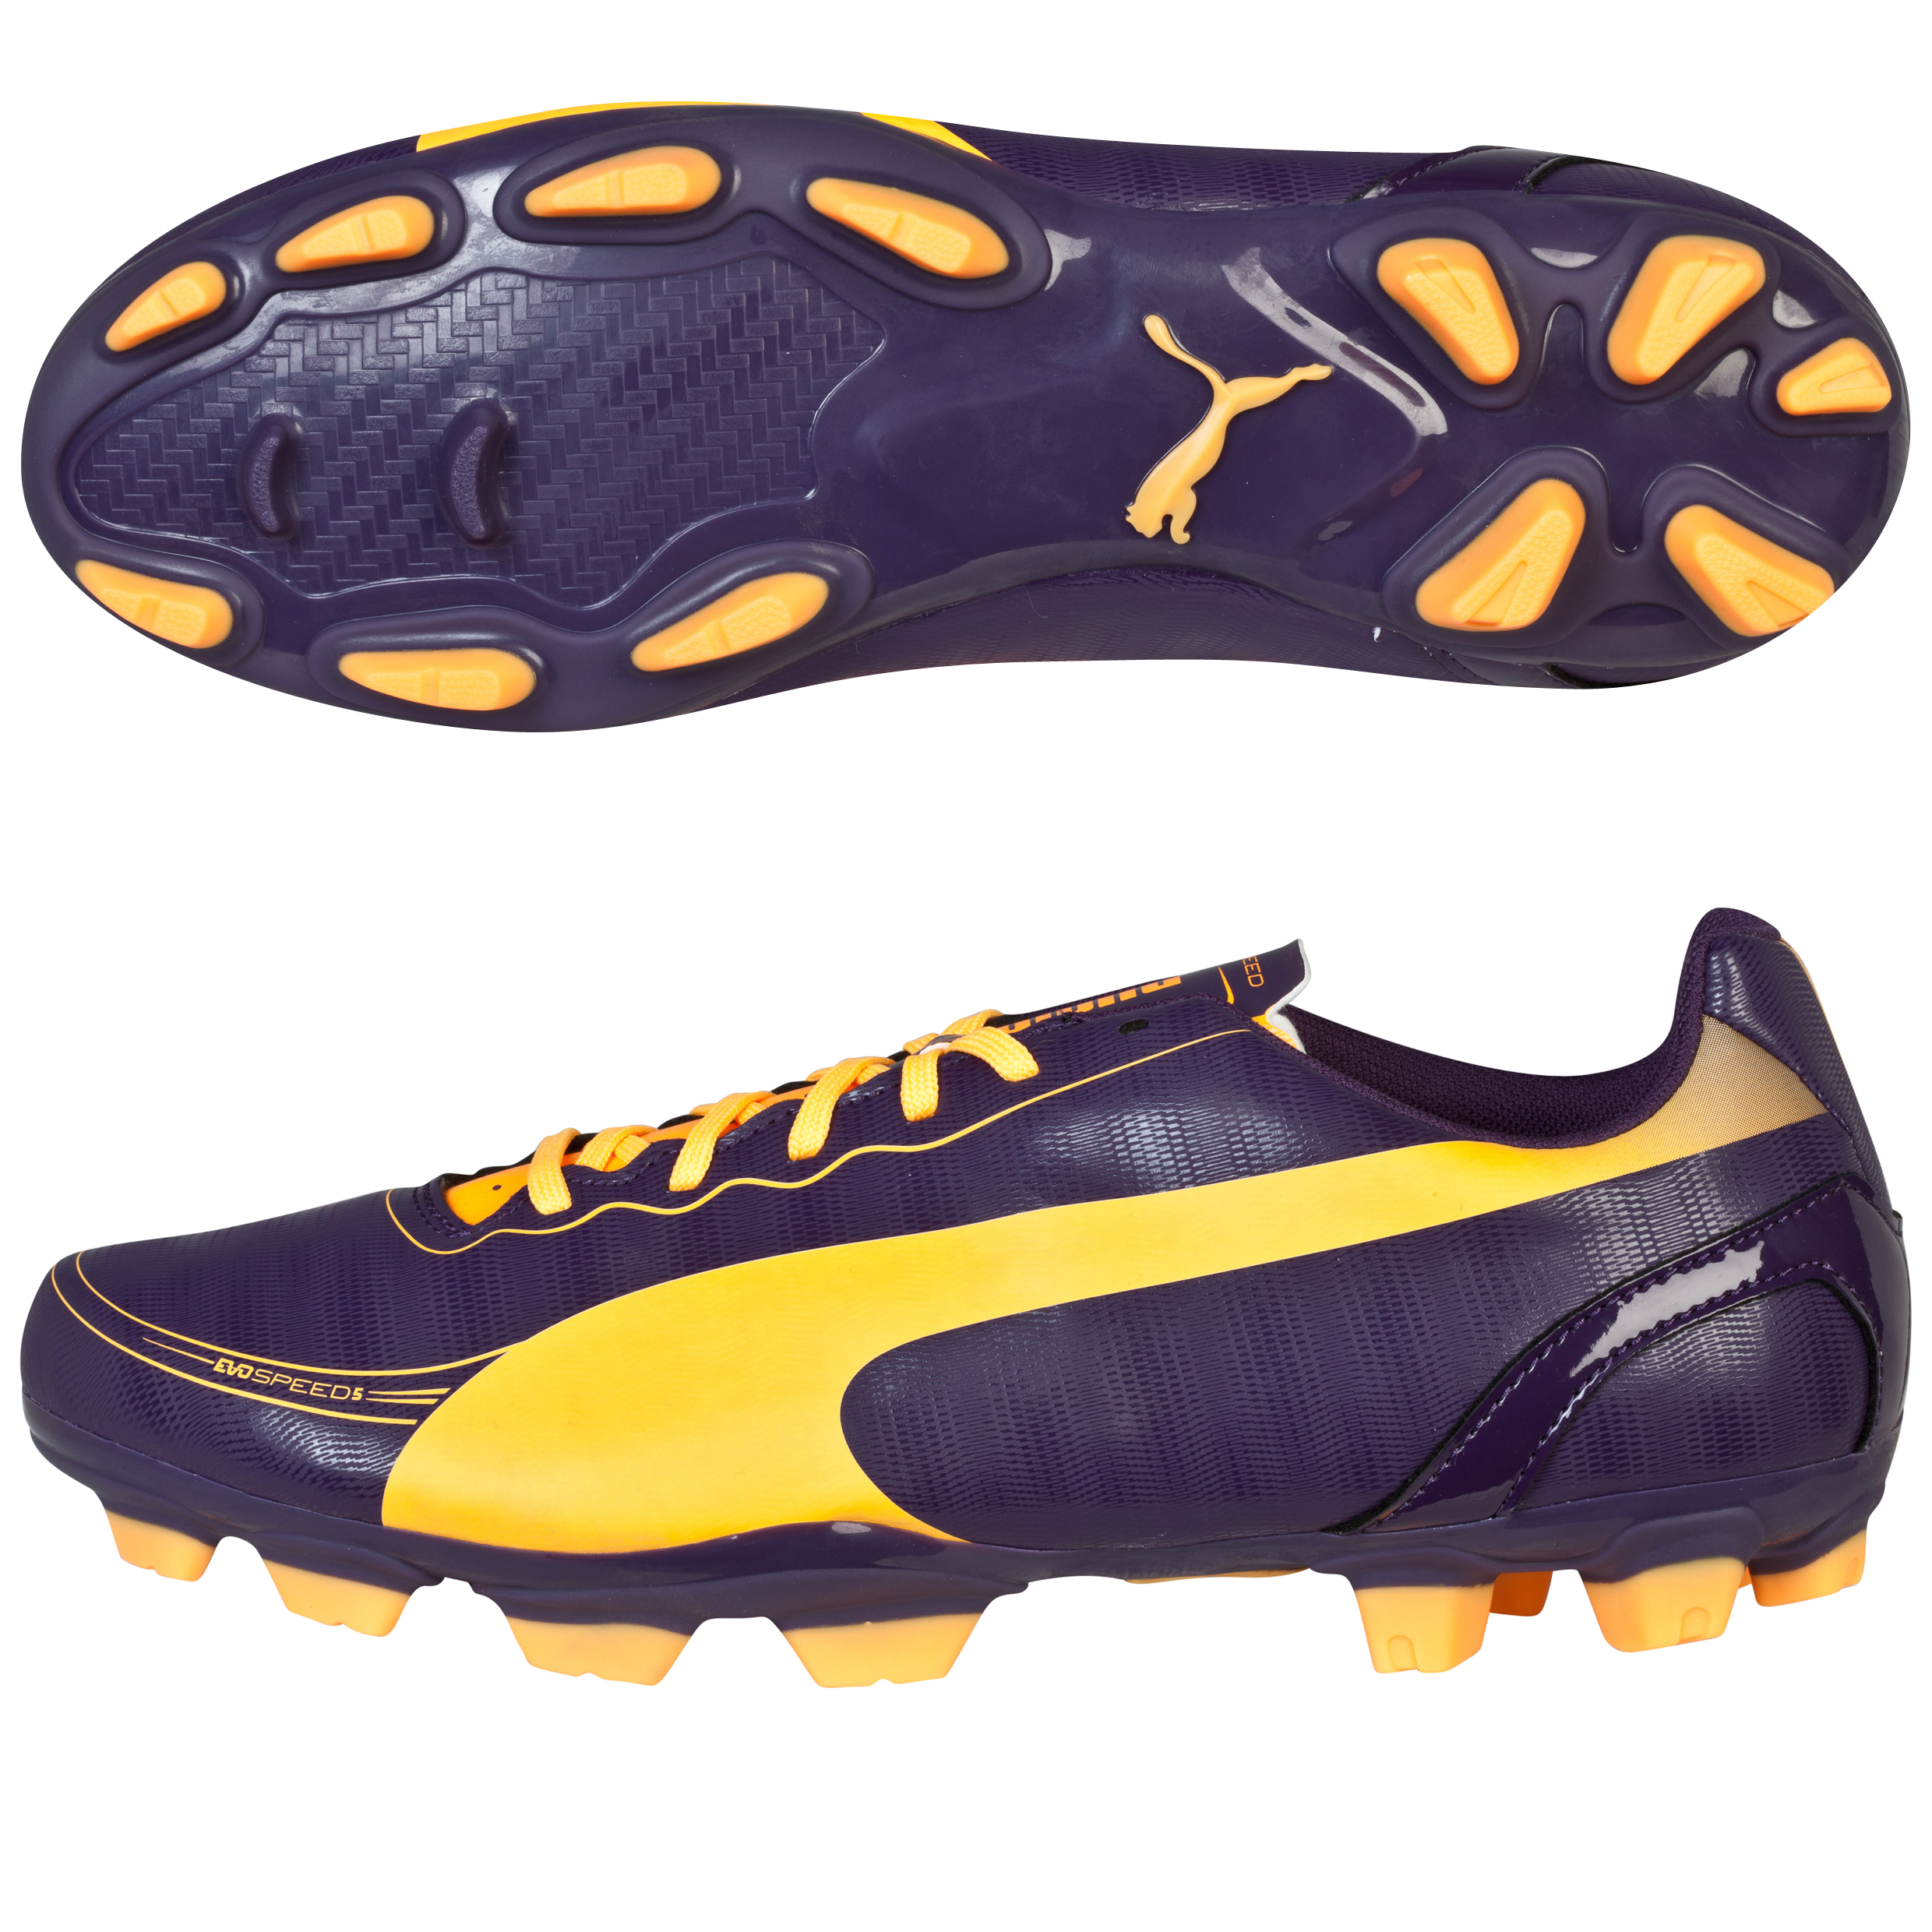 Puma evoSPEED 5.2 Firm Ground Football Boots Black